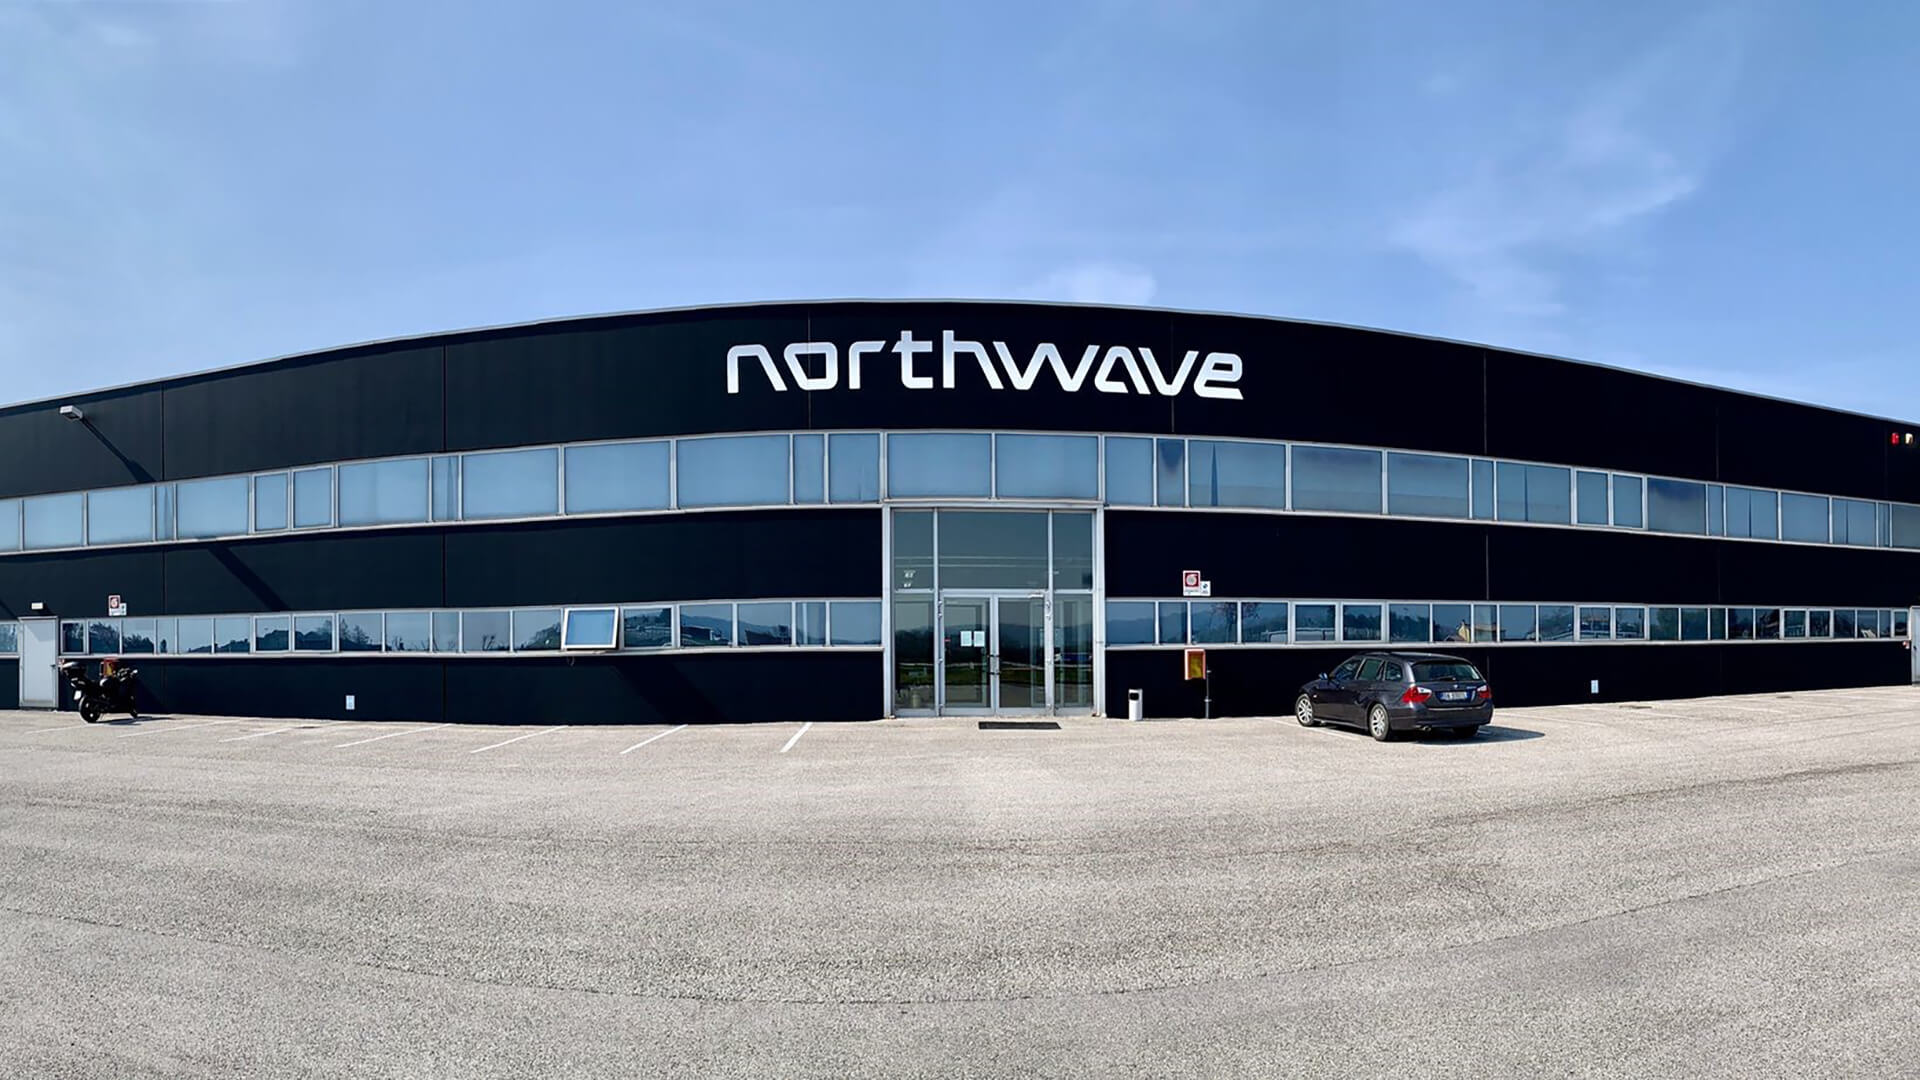 Northwave buildin from the outside